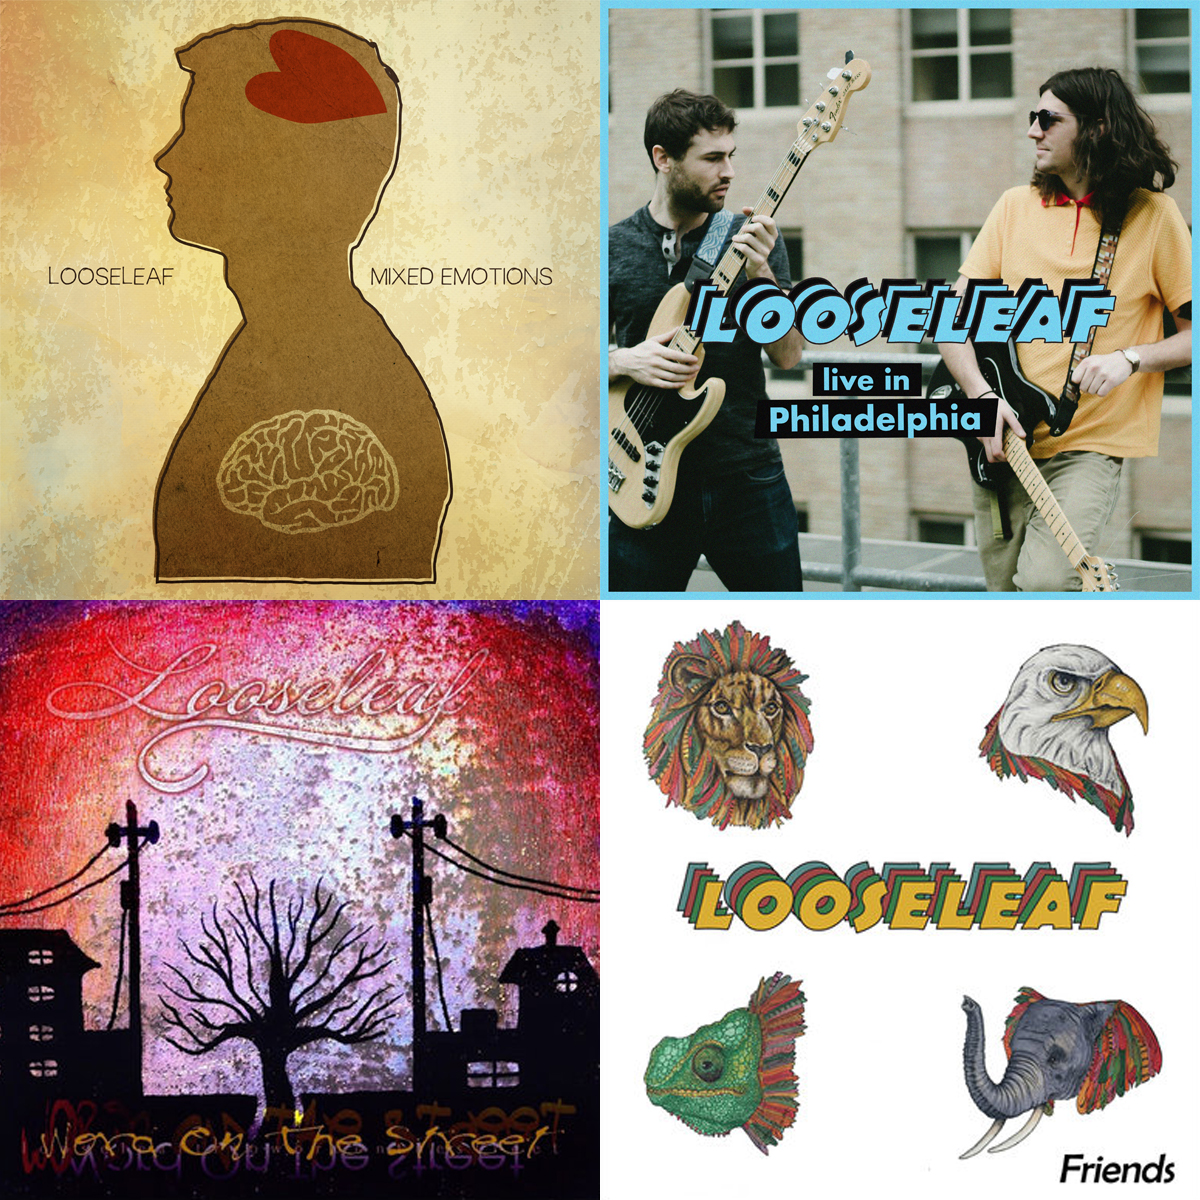 Looseleaf_Discography